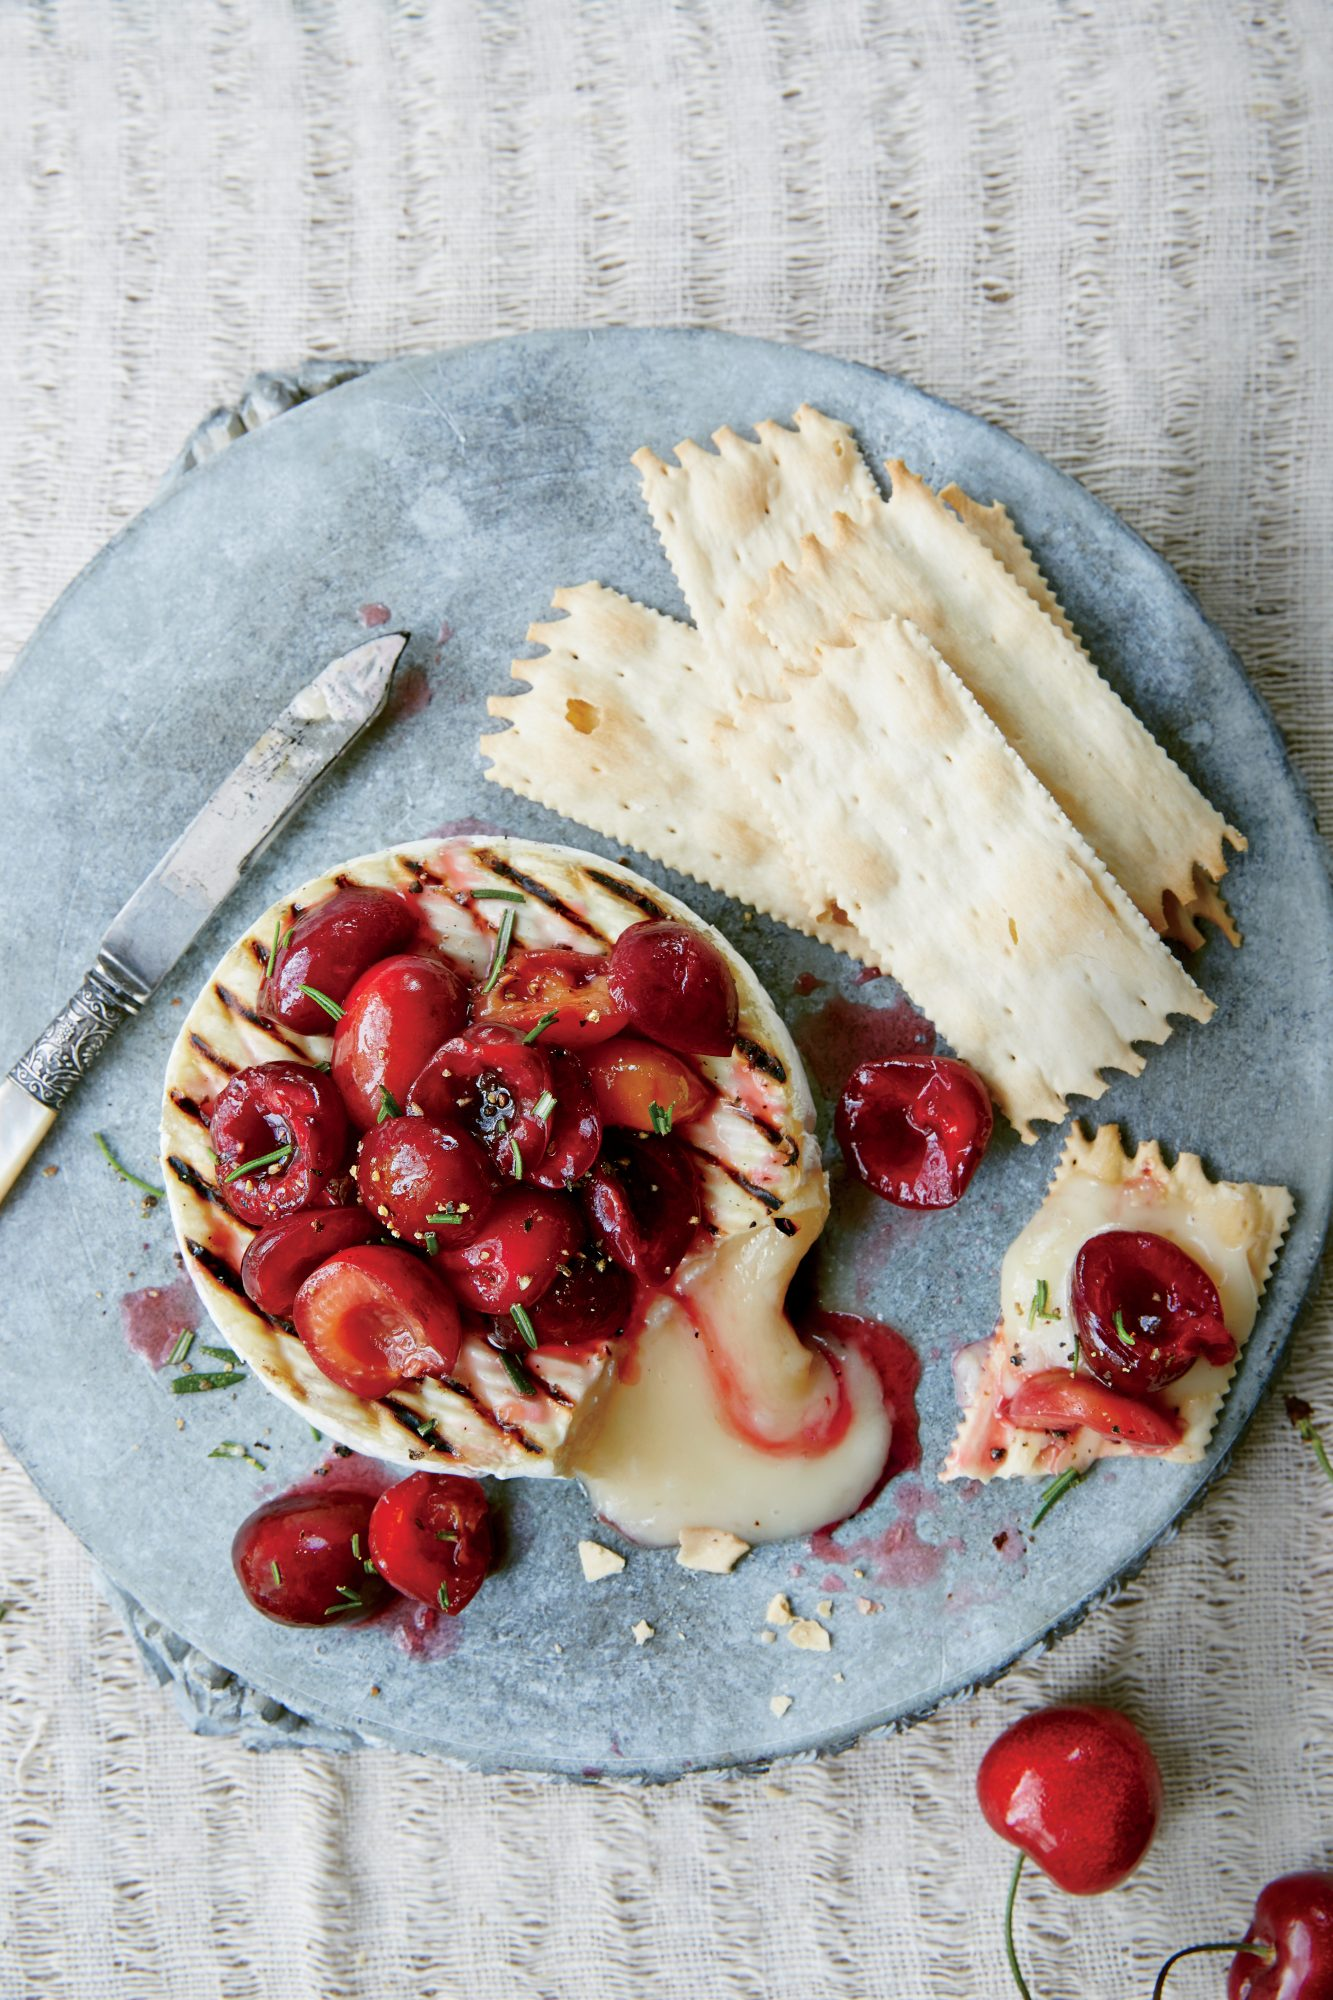 ck-Grilled Camembert with Macerated Cherries and Rosemary Image